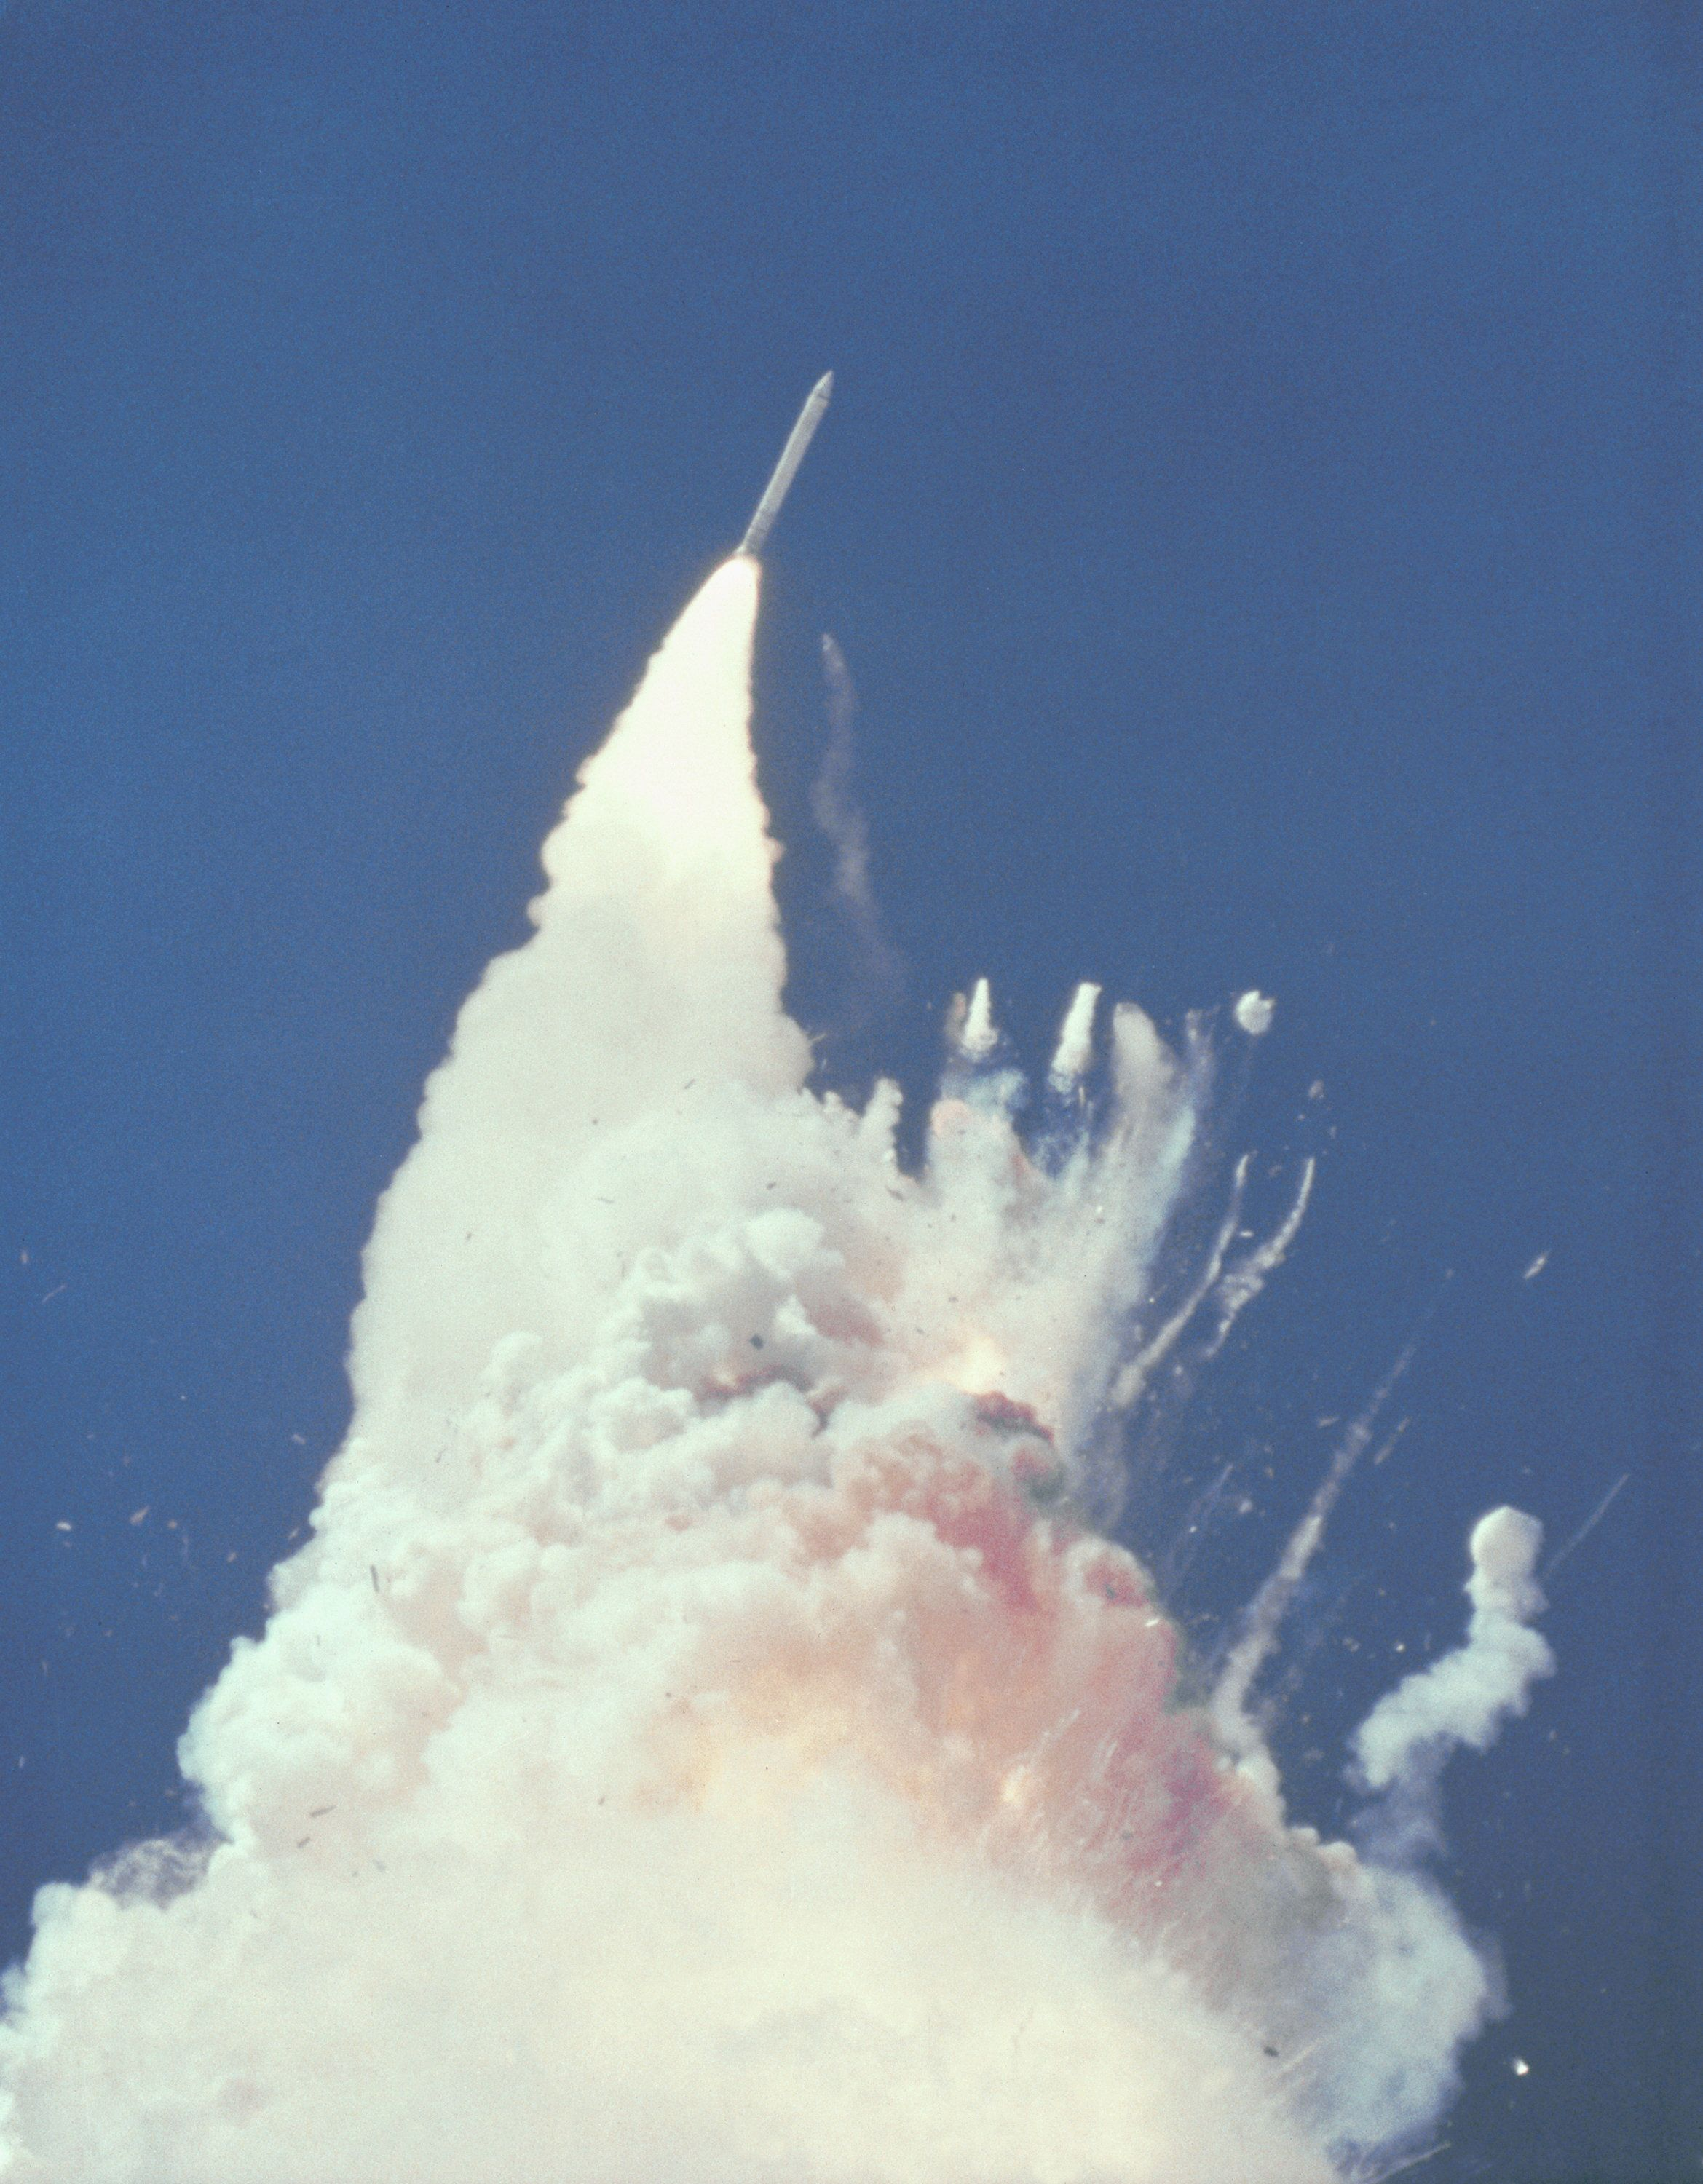 Fragments of the Space Shuttle Challenger Orbiter can be seen tumbling against a background of fire, smoke and vaporized propellants from the External Tank after liftoff from the Kennedy Space Center in this NASA handout photo dated January 28, 1986. The left Solid Rocket Booster (SRB) flies rampant, still thrusting. The reddish-brown cloud envelops the disintegrating Orbiter. The color is indicative of the nitrogen tetroxide oxidizer propellant in the Orbiter Reaction Control System. REUTERS/NASA/Handout  (UNITED STATES - Tags: SCI TECH DISASTER) FOR EDITORIAL USE ONLY. NOT FOR SALE FOR MARKETING OR ADVERTISING CAMPAIGNS. THIS IMAGE HAS BEEN SUPPLIED BY A THIRD PARTY. IT IS DISTRIBUTED, EXACTLY AS RECEIVED BY REUTERS, AS A SERVICE TO CLIENTS